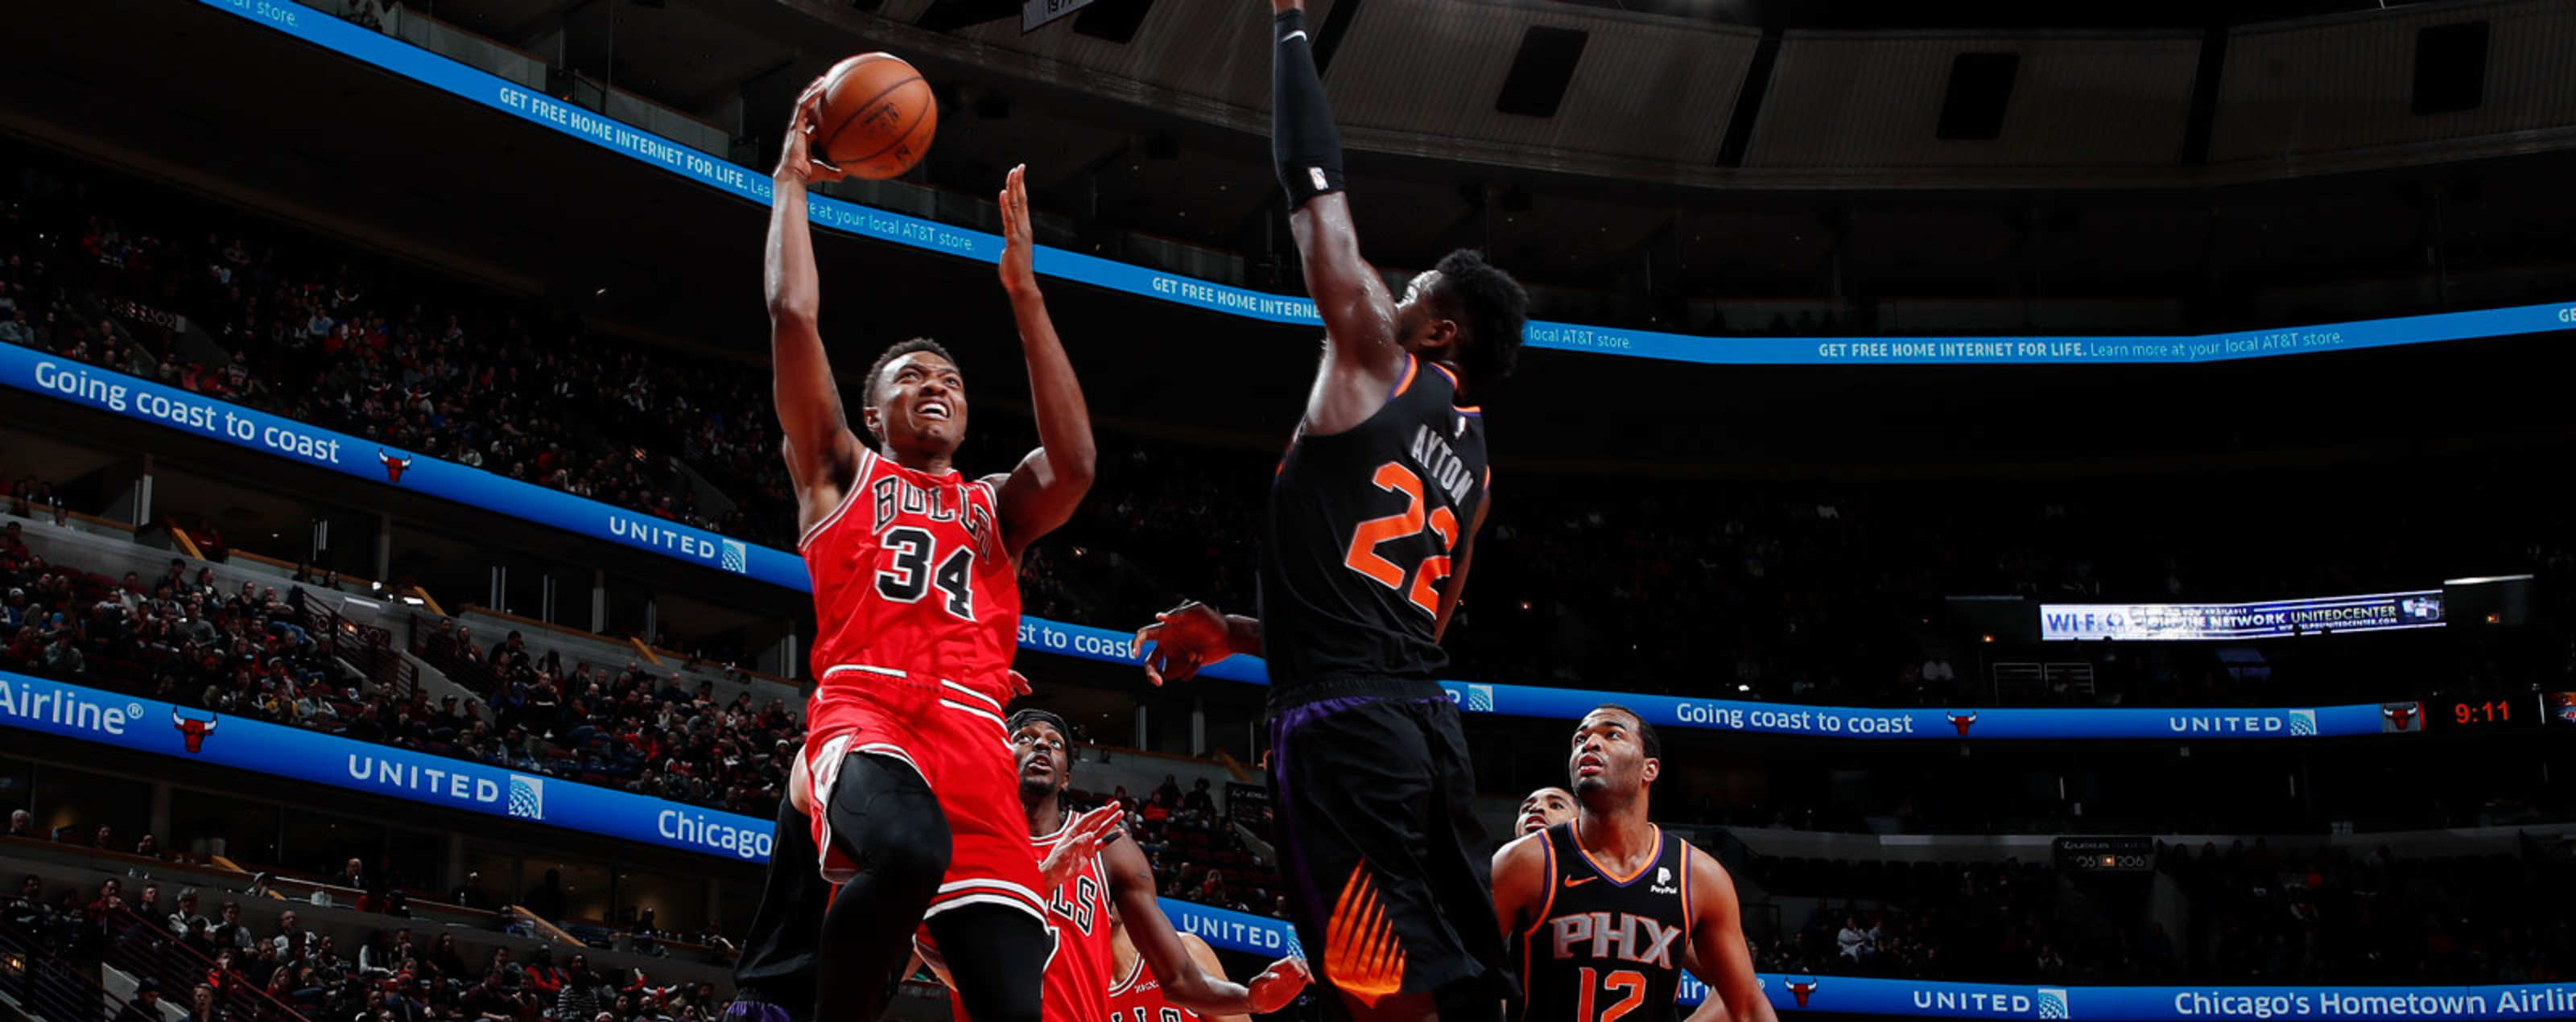 Wendell Carter Jr. #34 of the Chicago Bulls shoots the ball against the Phoenix Suns on November 21, 2018 at United Center in Chicago, Illinois.